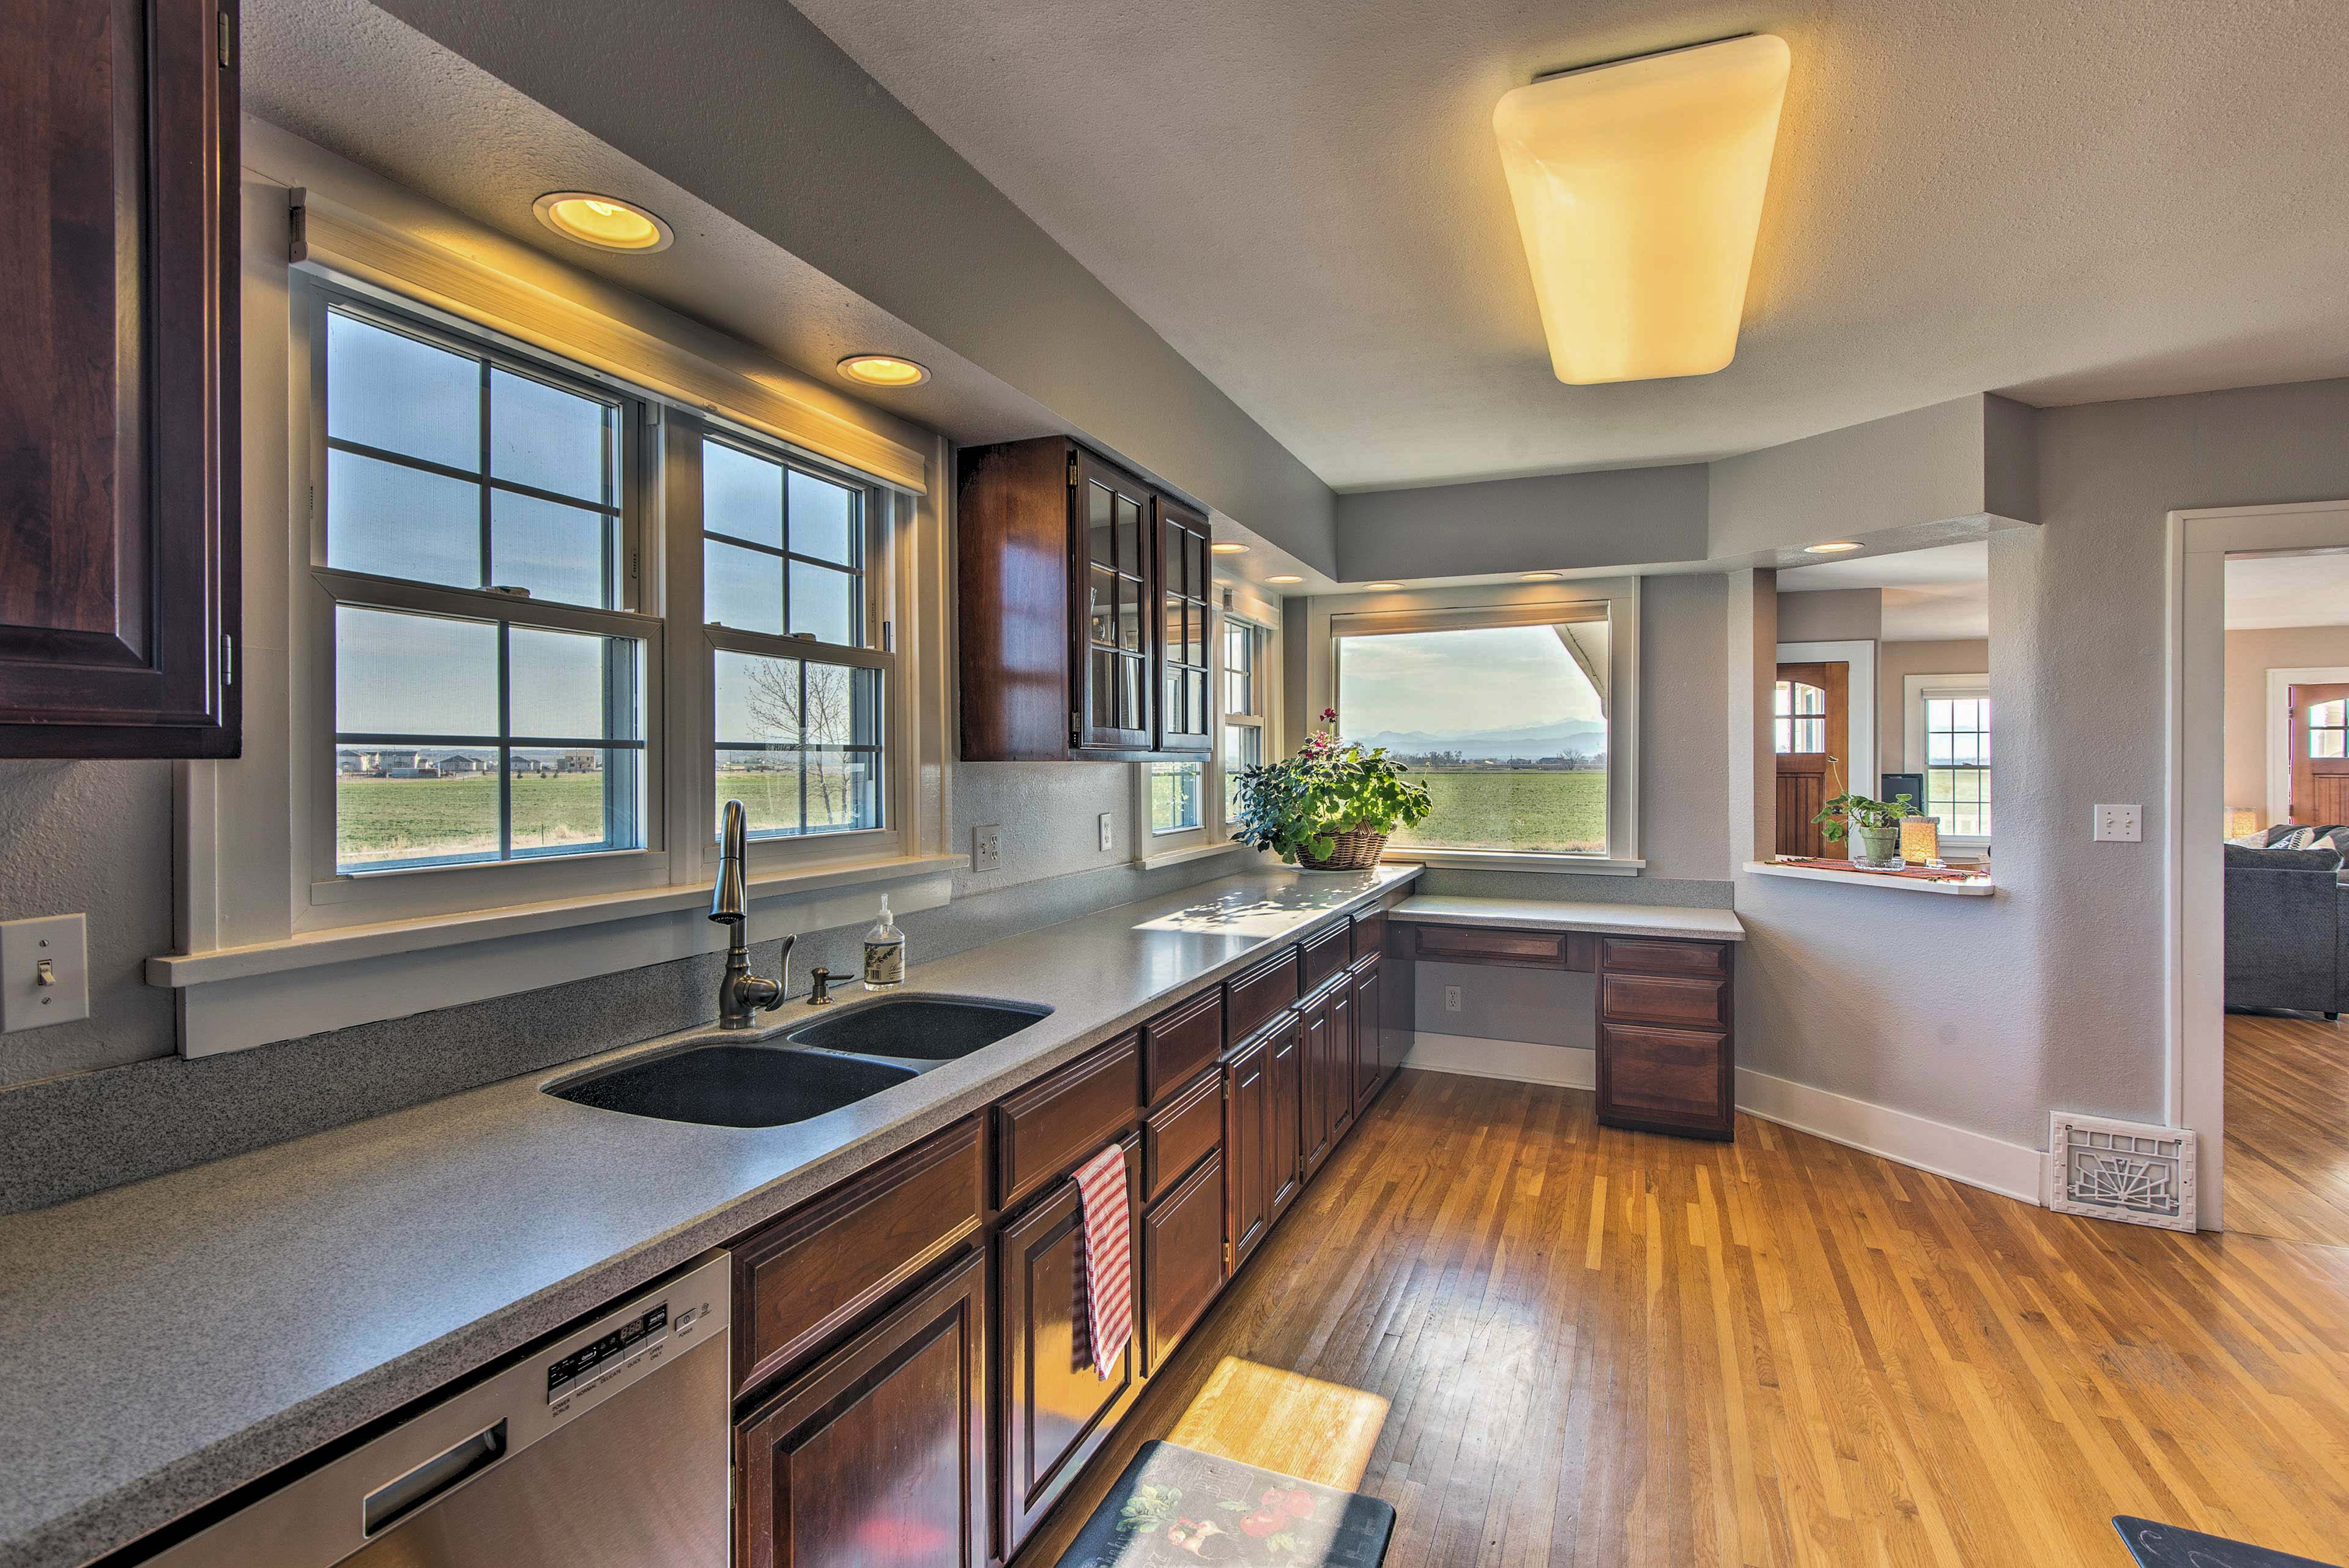 The cooking space includes stainless steel appliances and double sink.